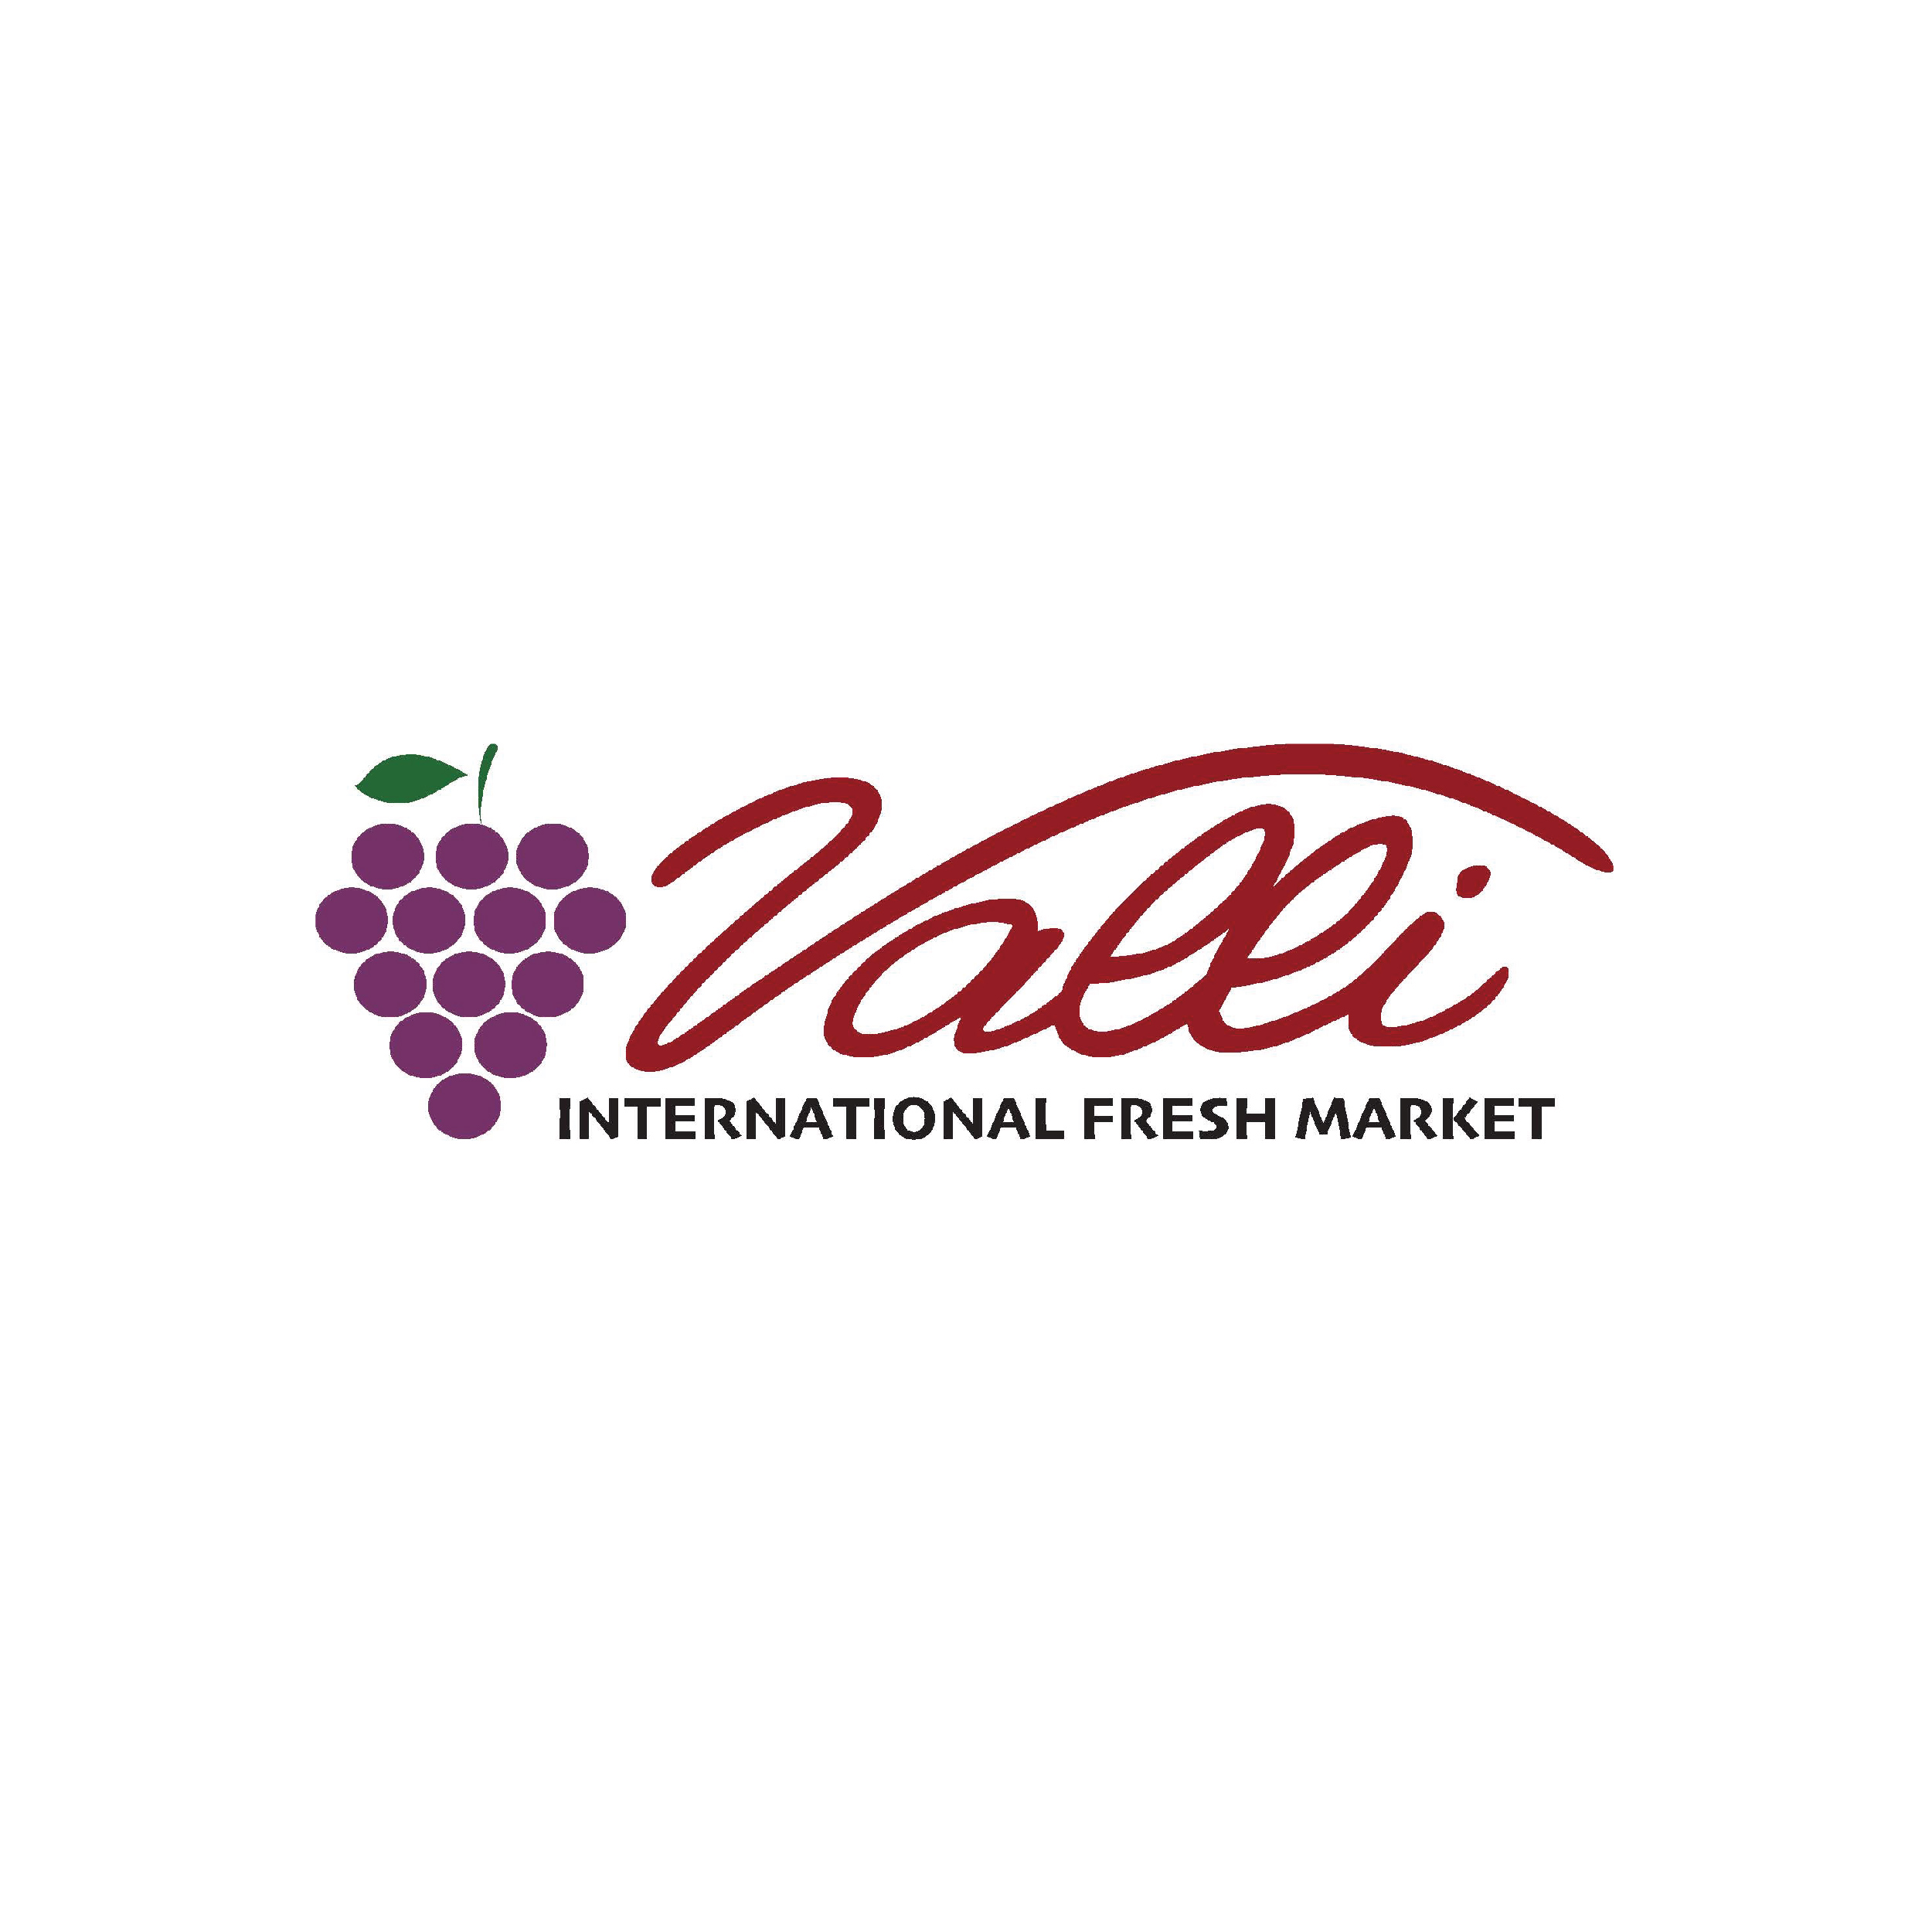 Check out Valli Produce